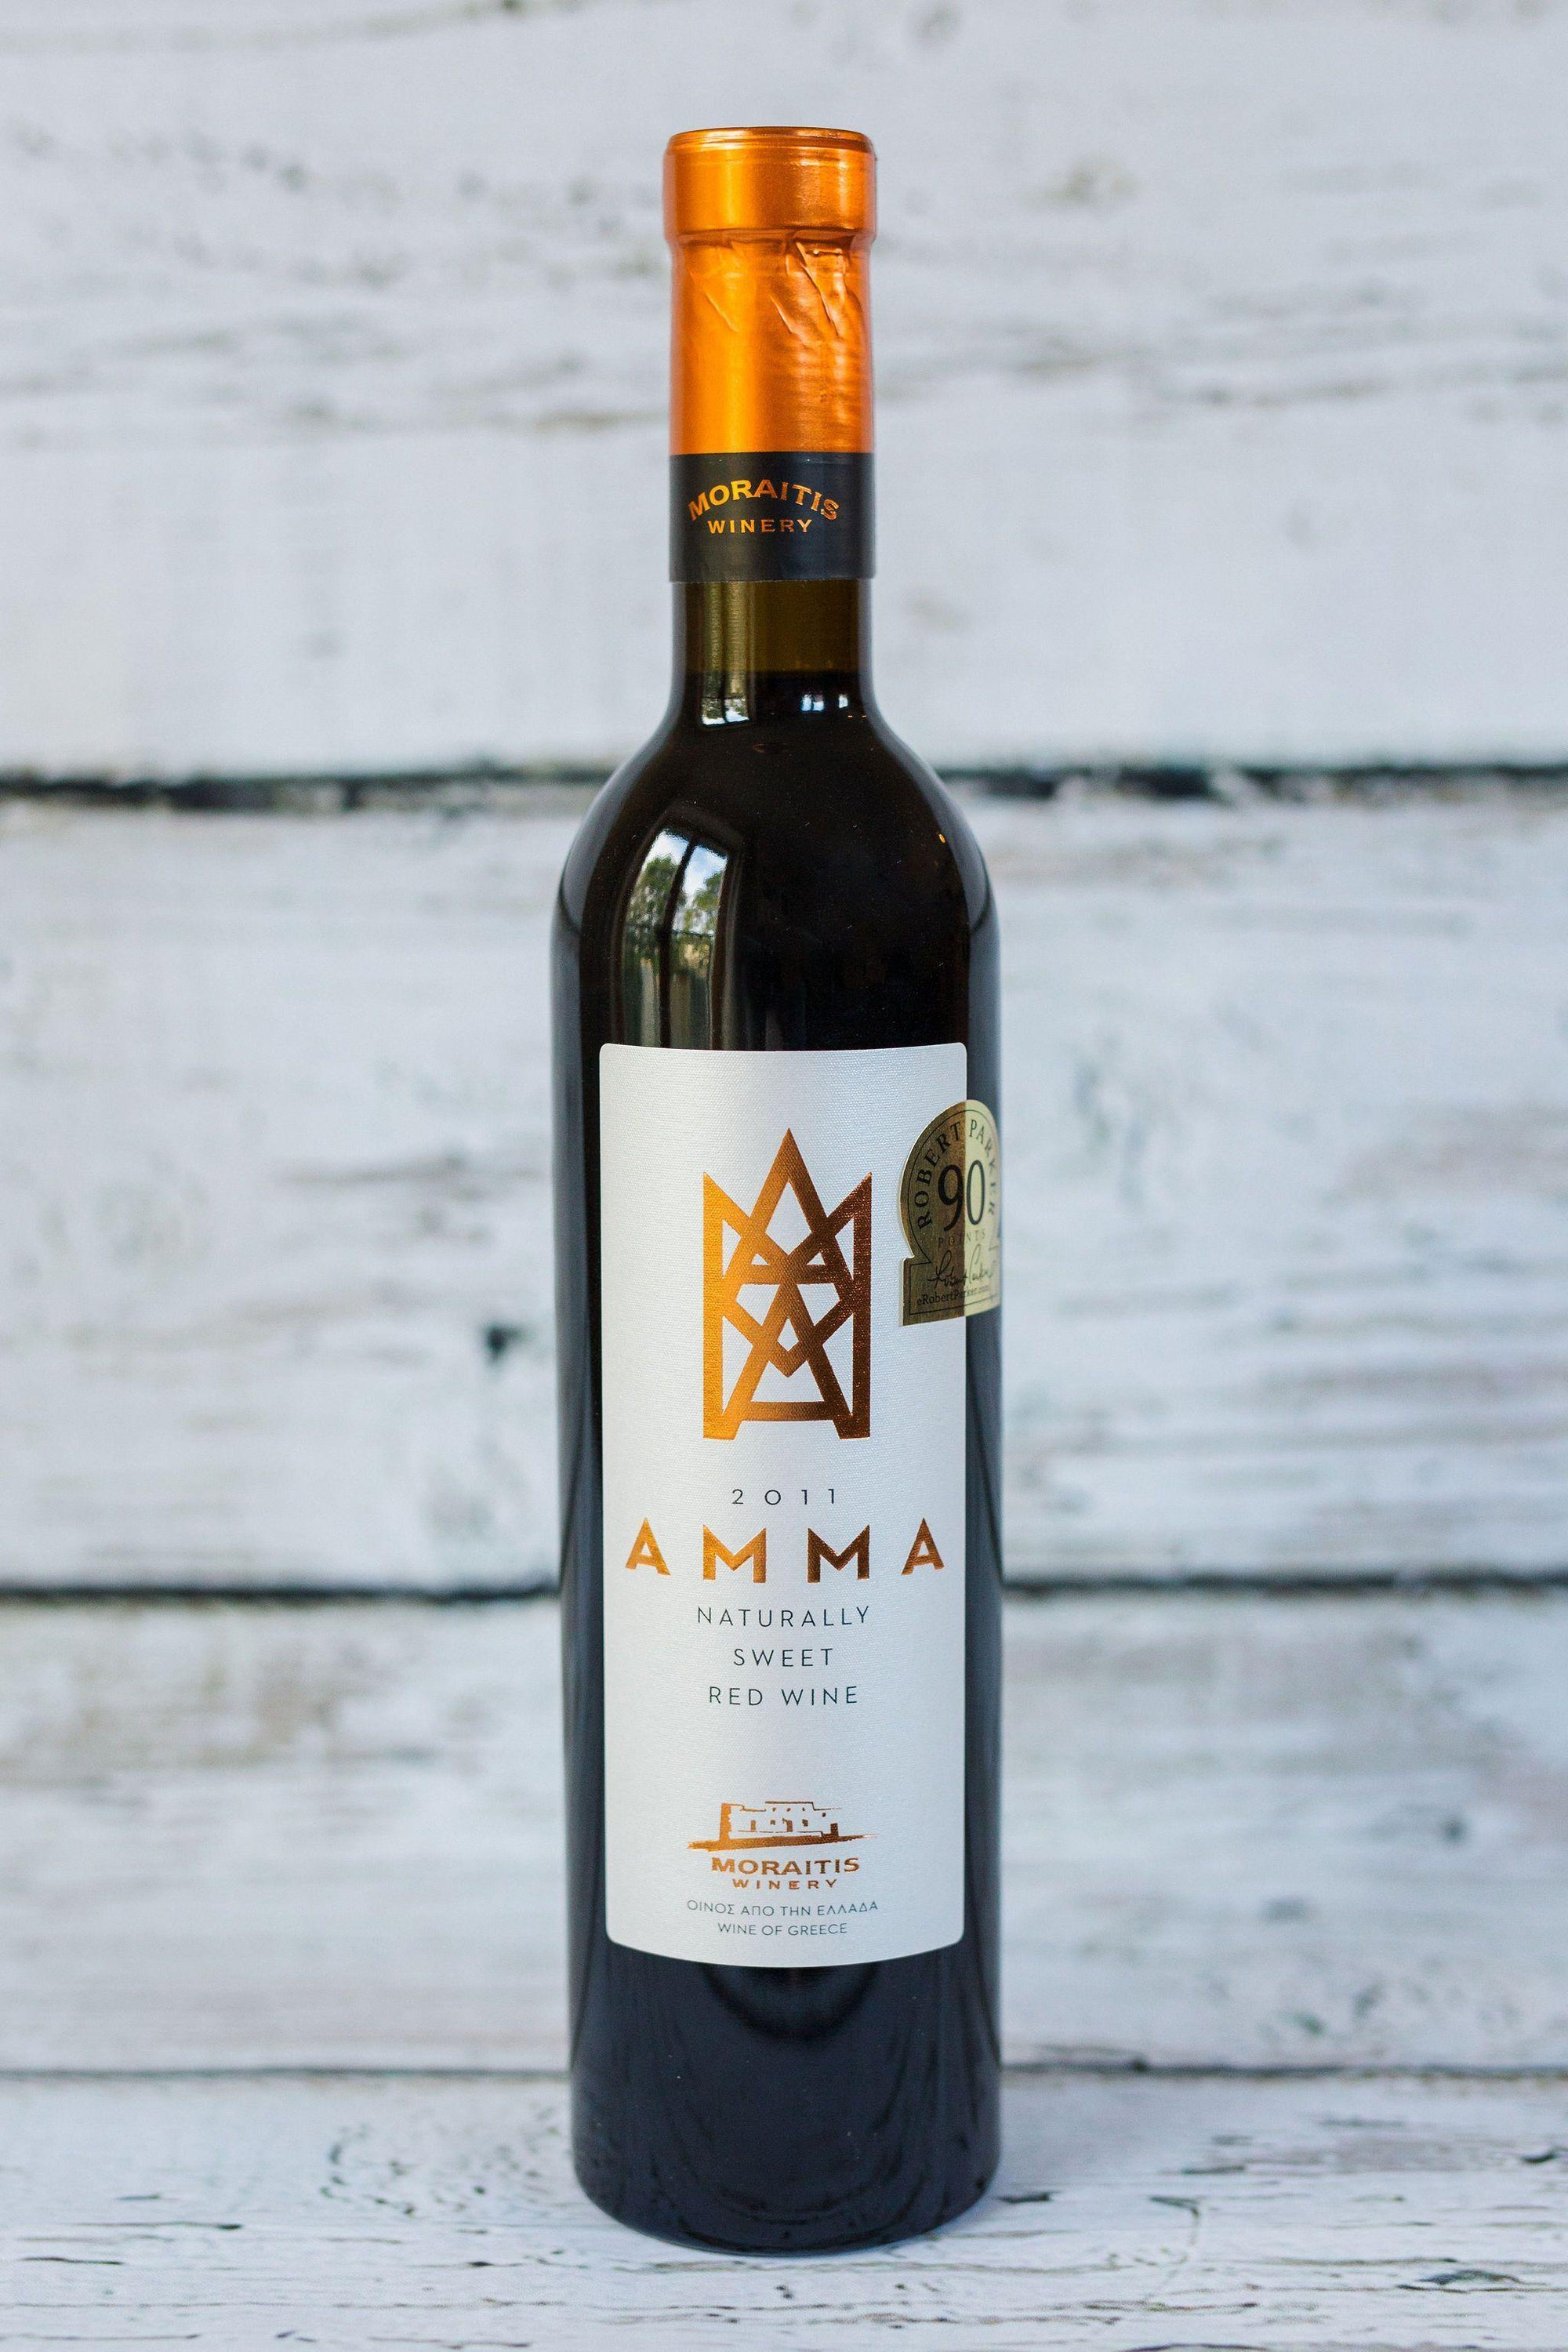 500ml brown glass bottle of Moraitis Amma Red Sweet Wine with front label and gold foil cap